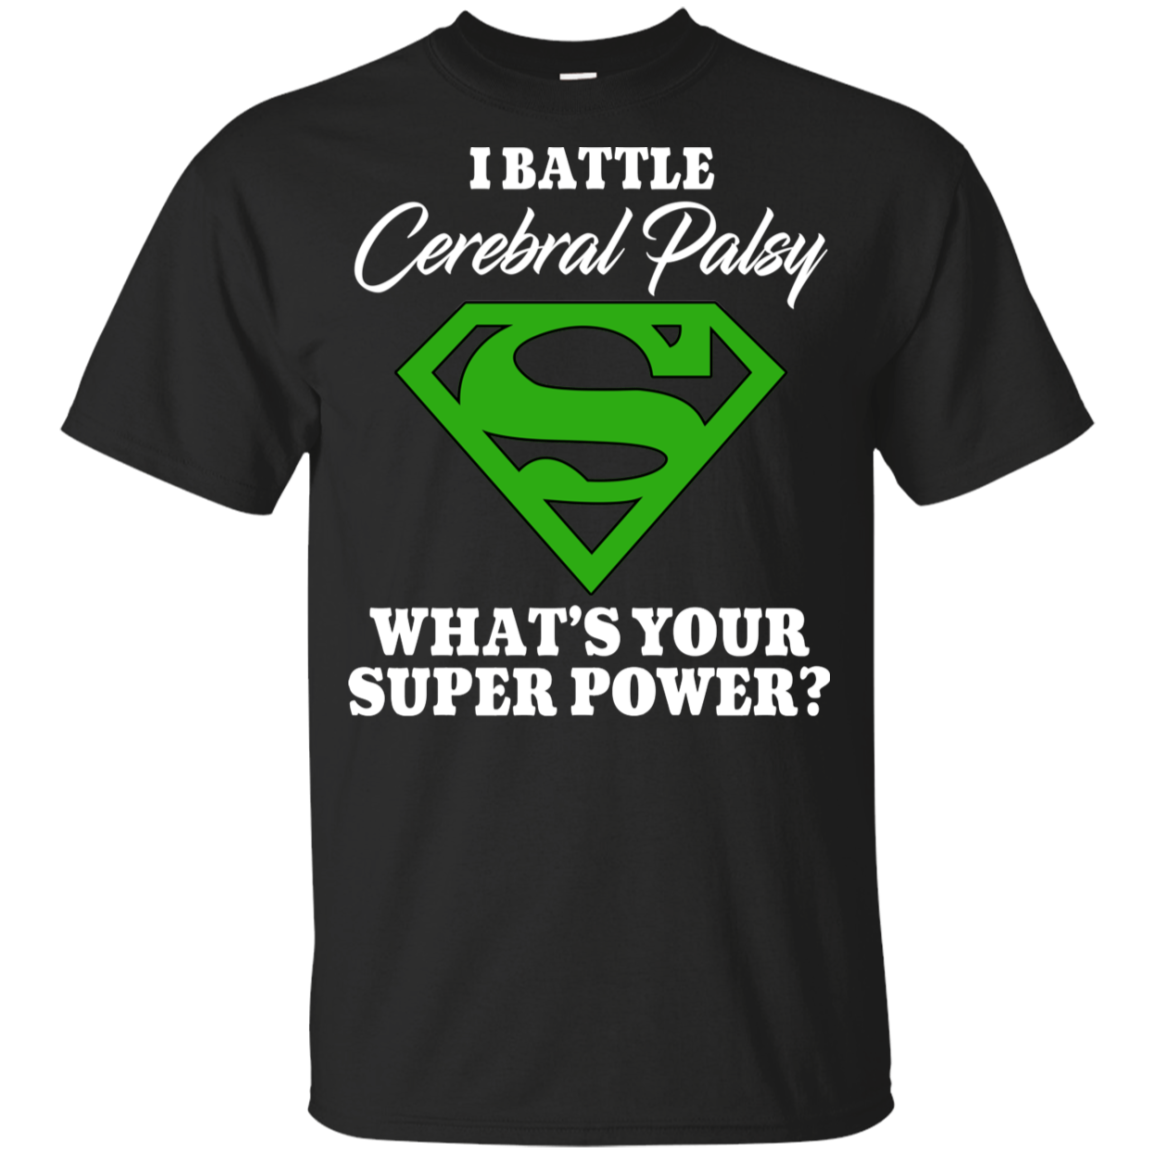 I Battle Cerebral Palsy  KIDS T Shirt